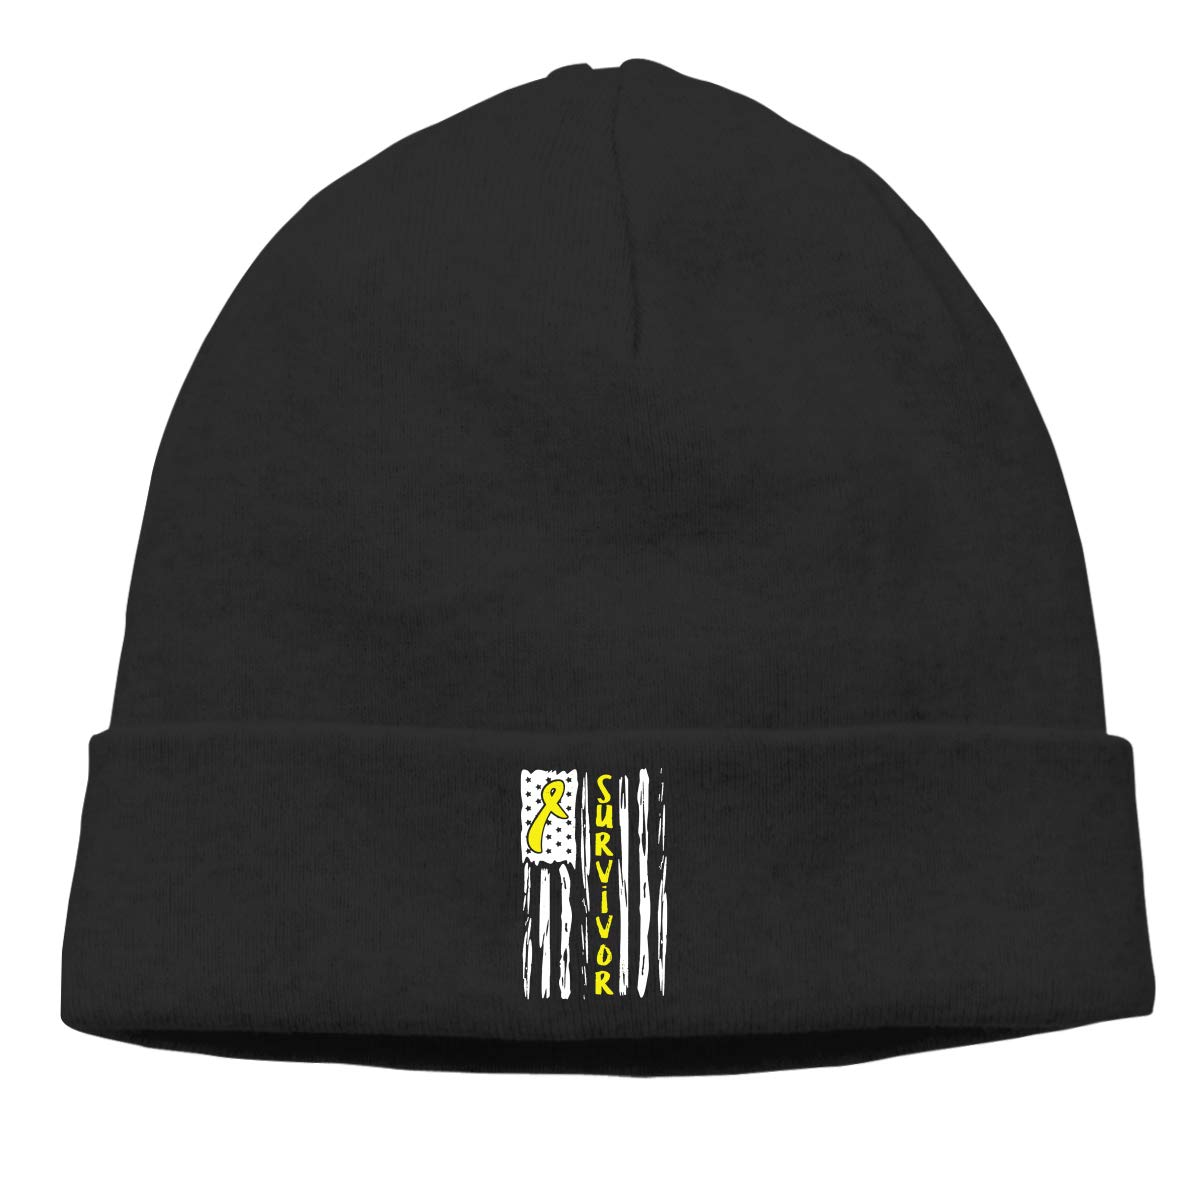 Stretchy /& Soft Winter Cap Thin Sarcoma Bone Awareness American Flag Unisex Solid Color Beanie Hat